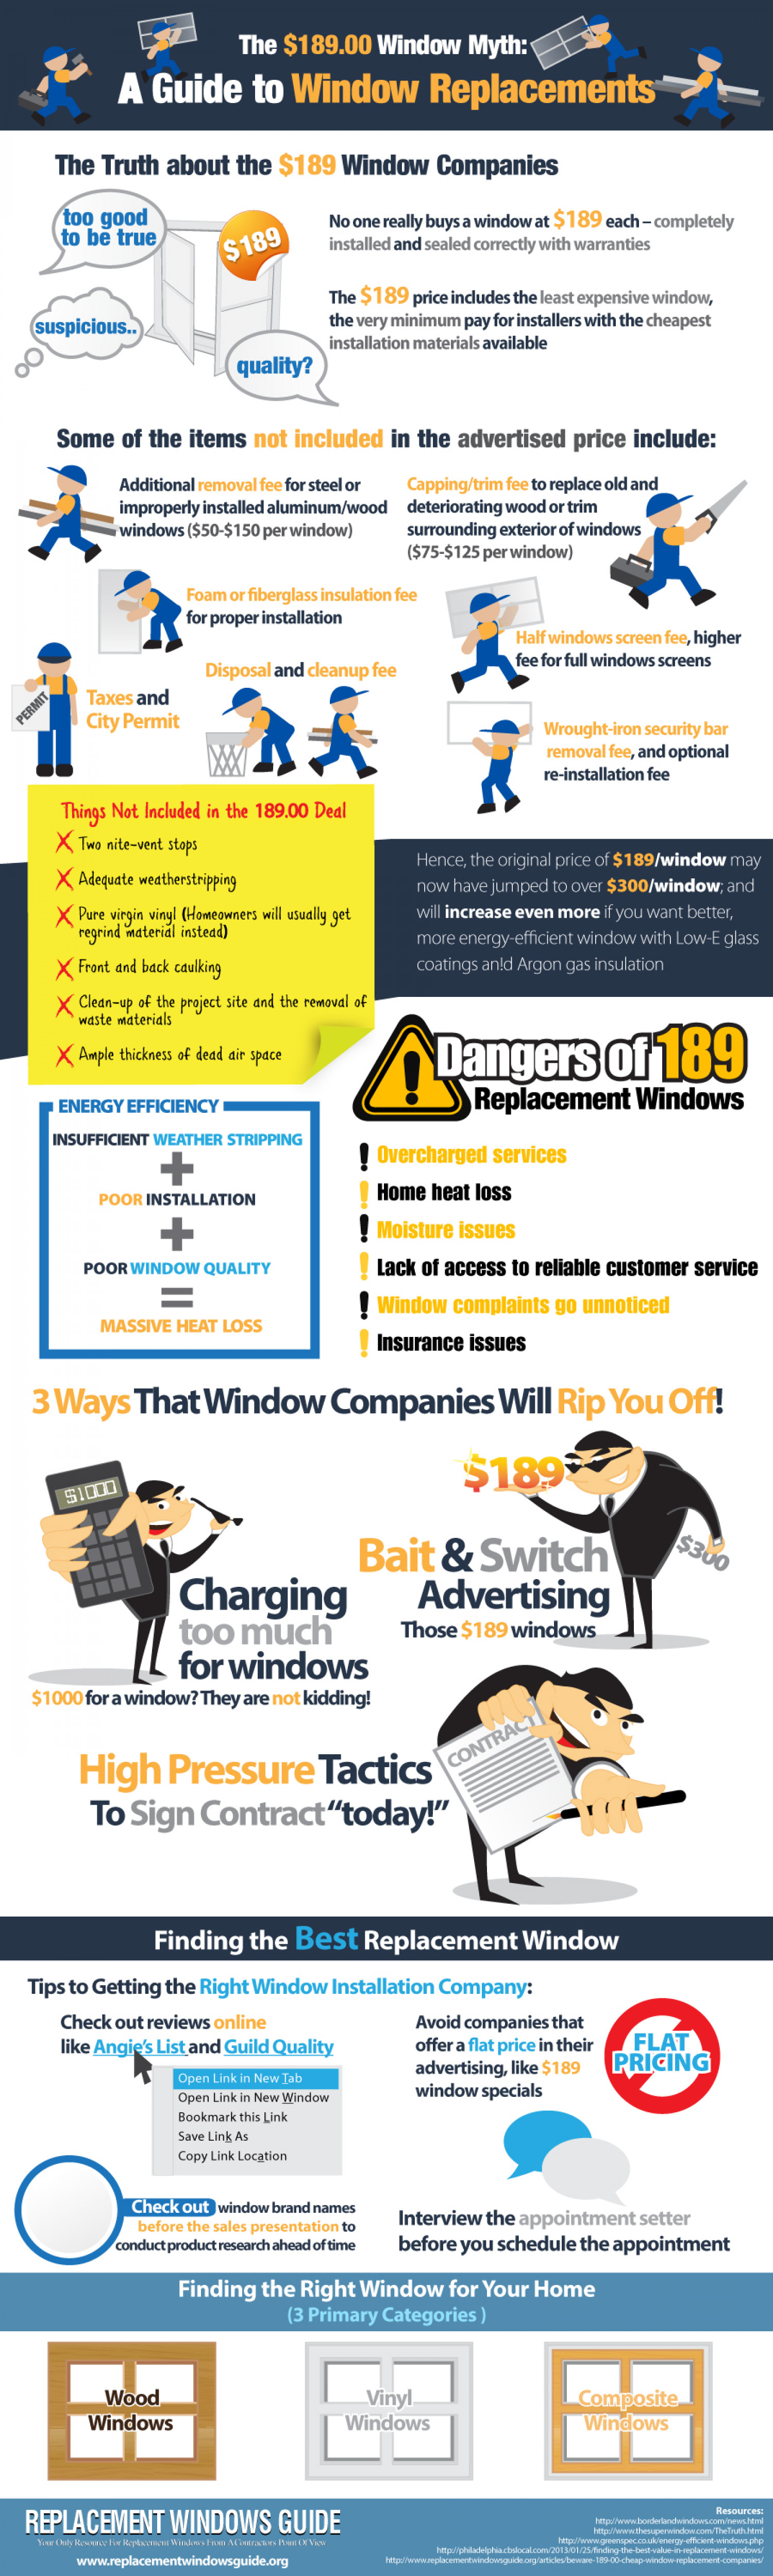 The $189.00 Window Myth: A Guide to Window Replacements Infographic